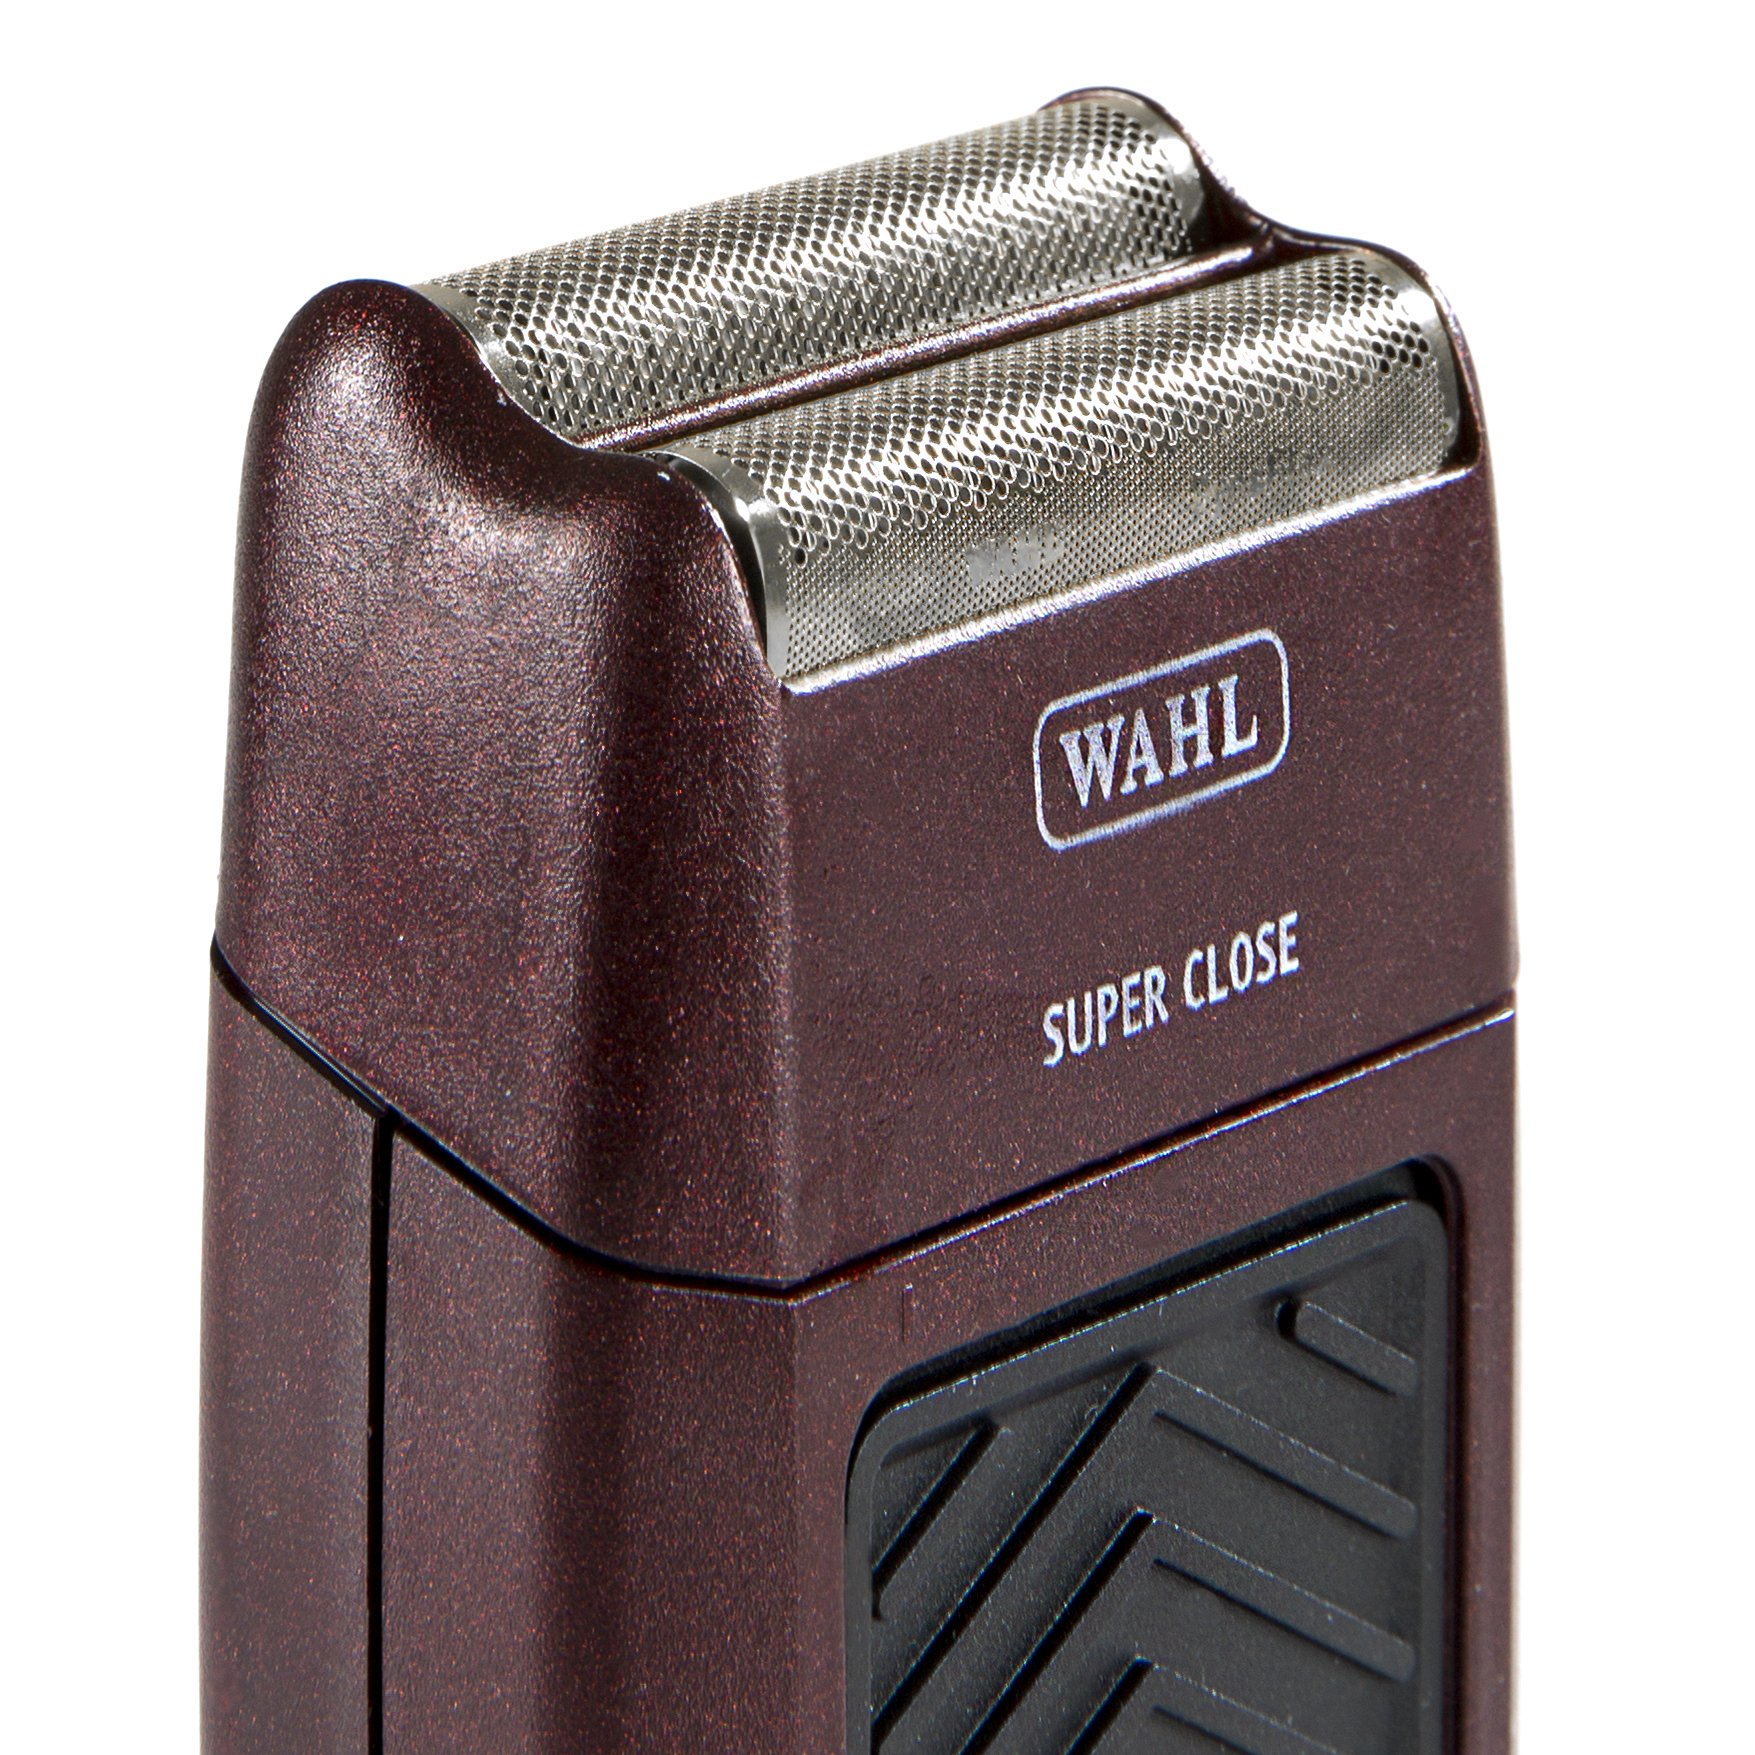 Wahl Professional 5-Star Series #7031-400 Replacement Foil Assembly – Red & Silver – Super Close by Wahl Professional (Image #2)